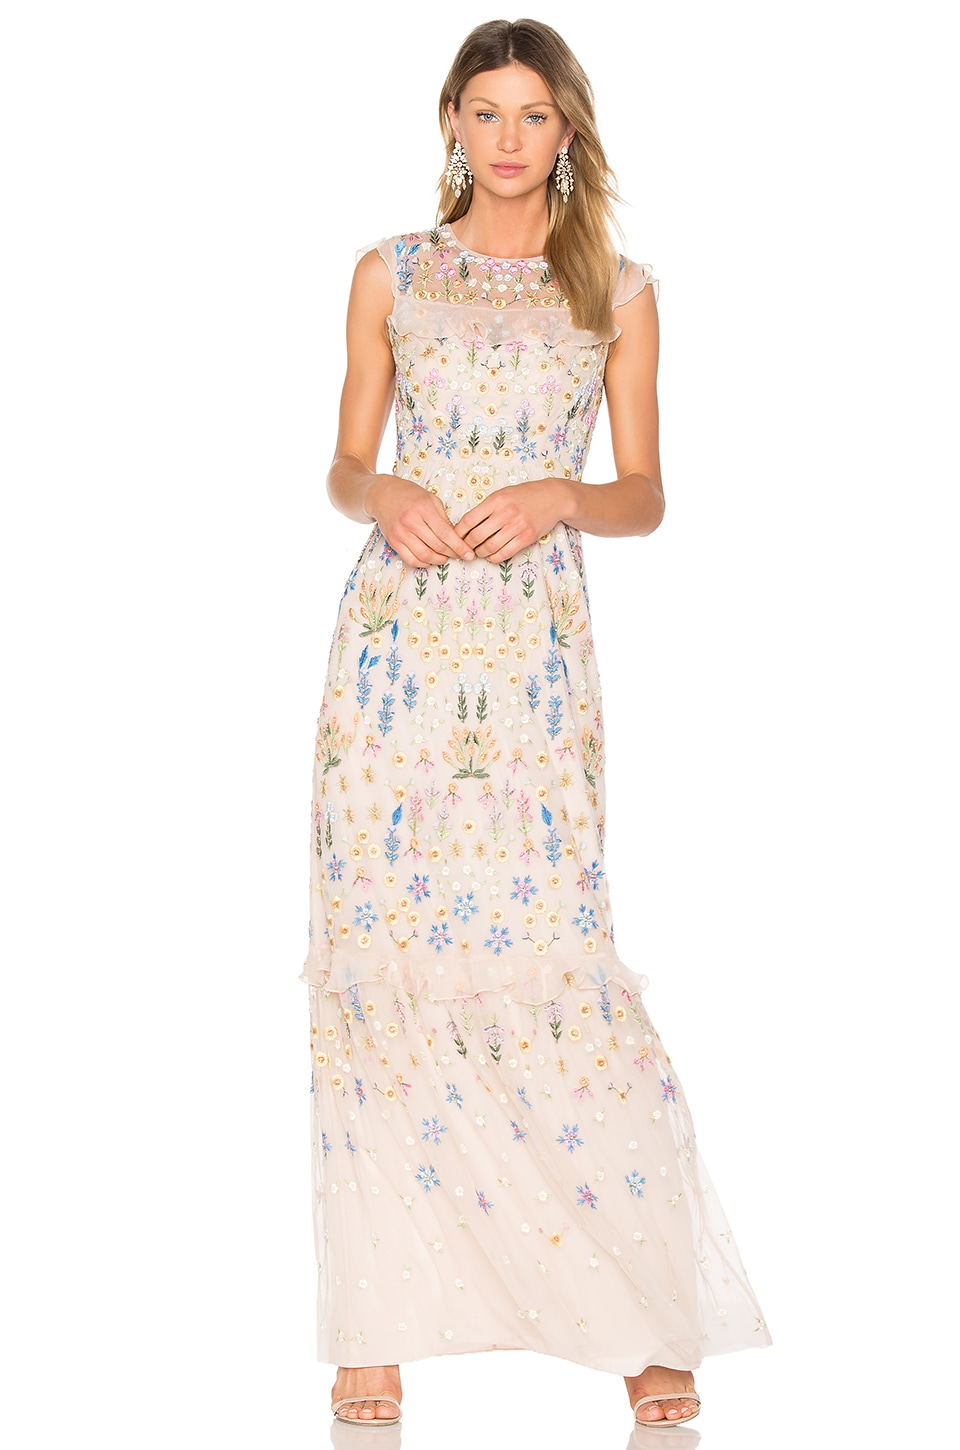 Flowerbed Embroidery Gown